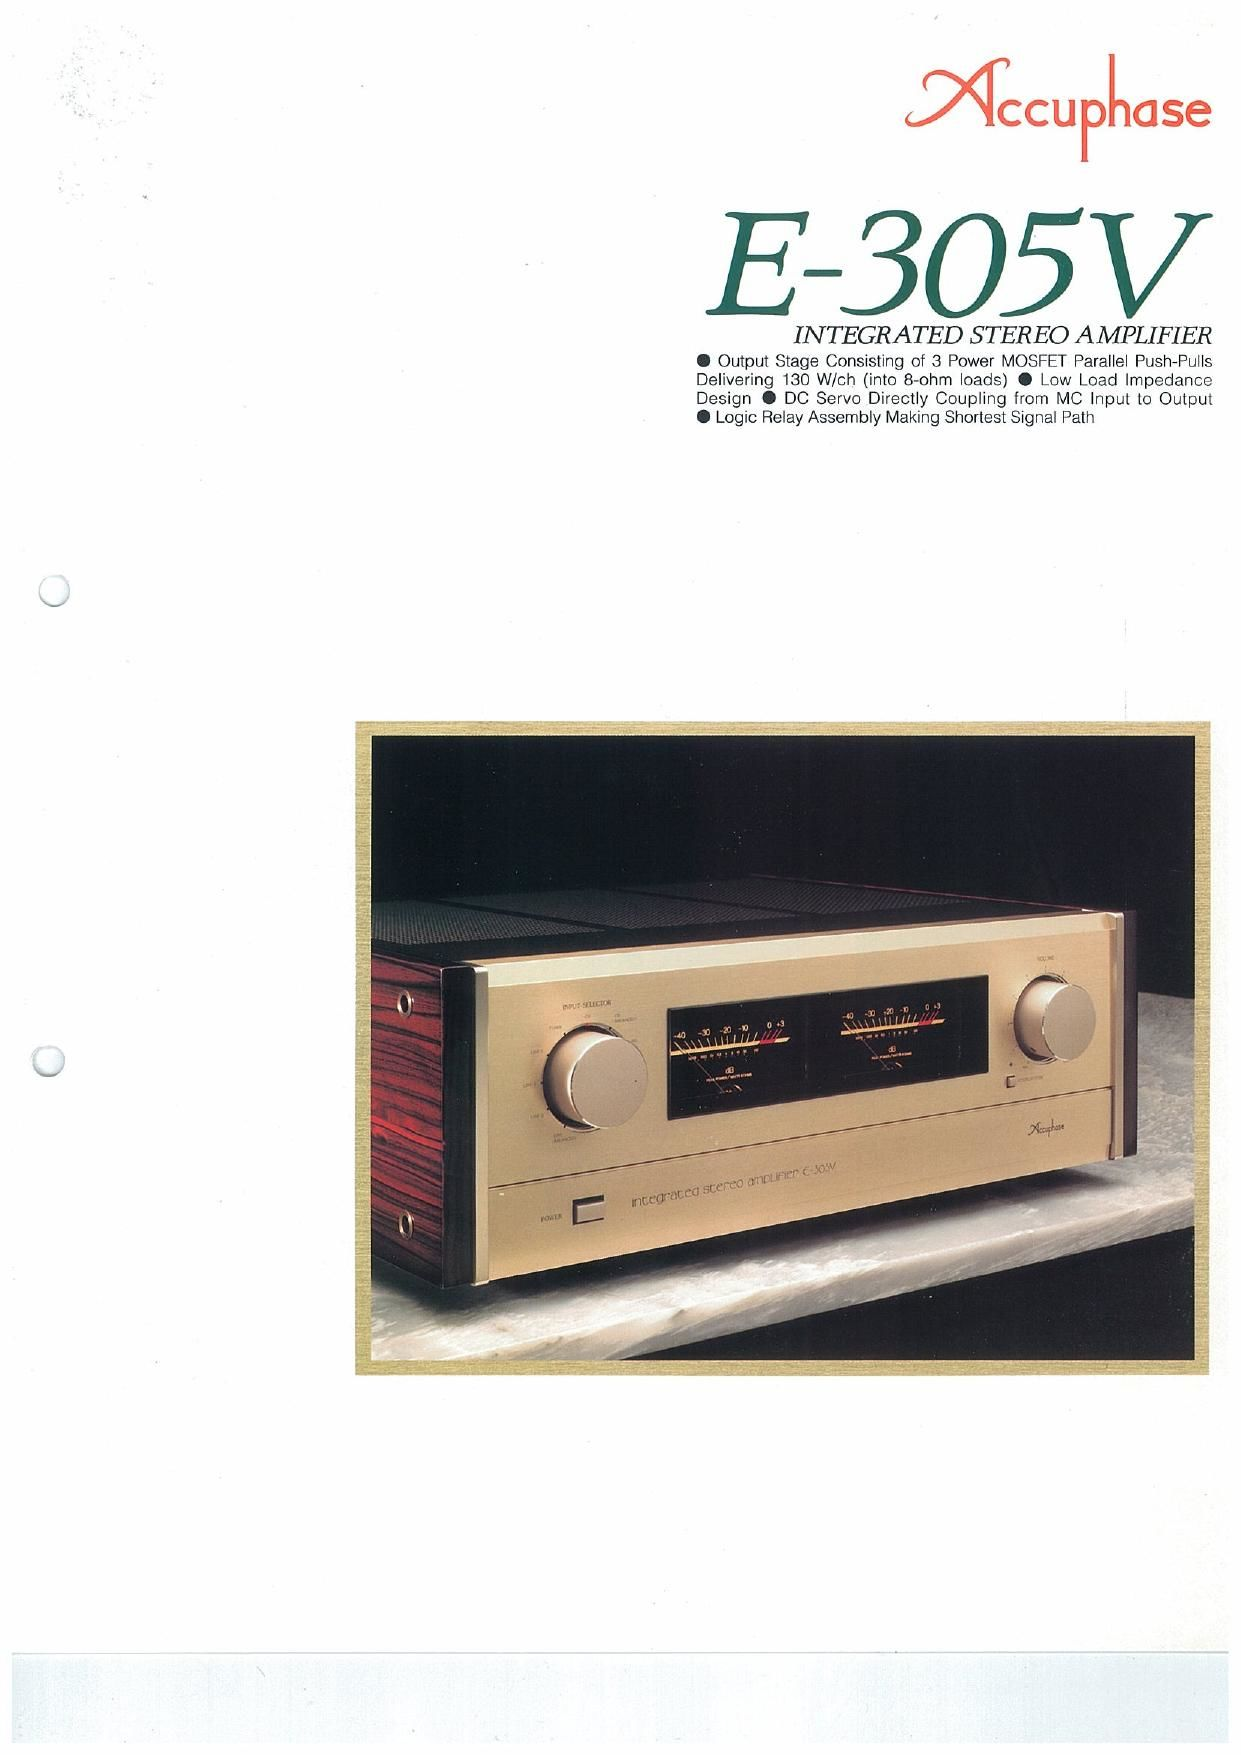 Accuphase E 305 V Brochure